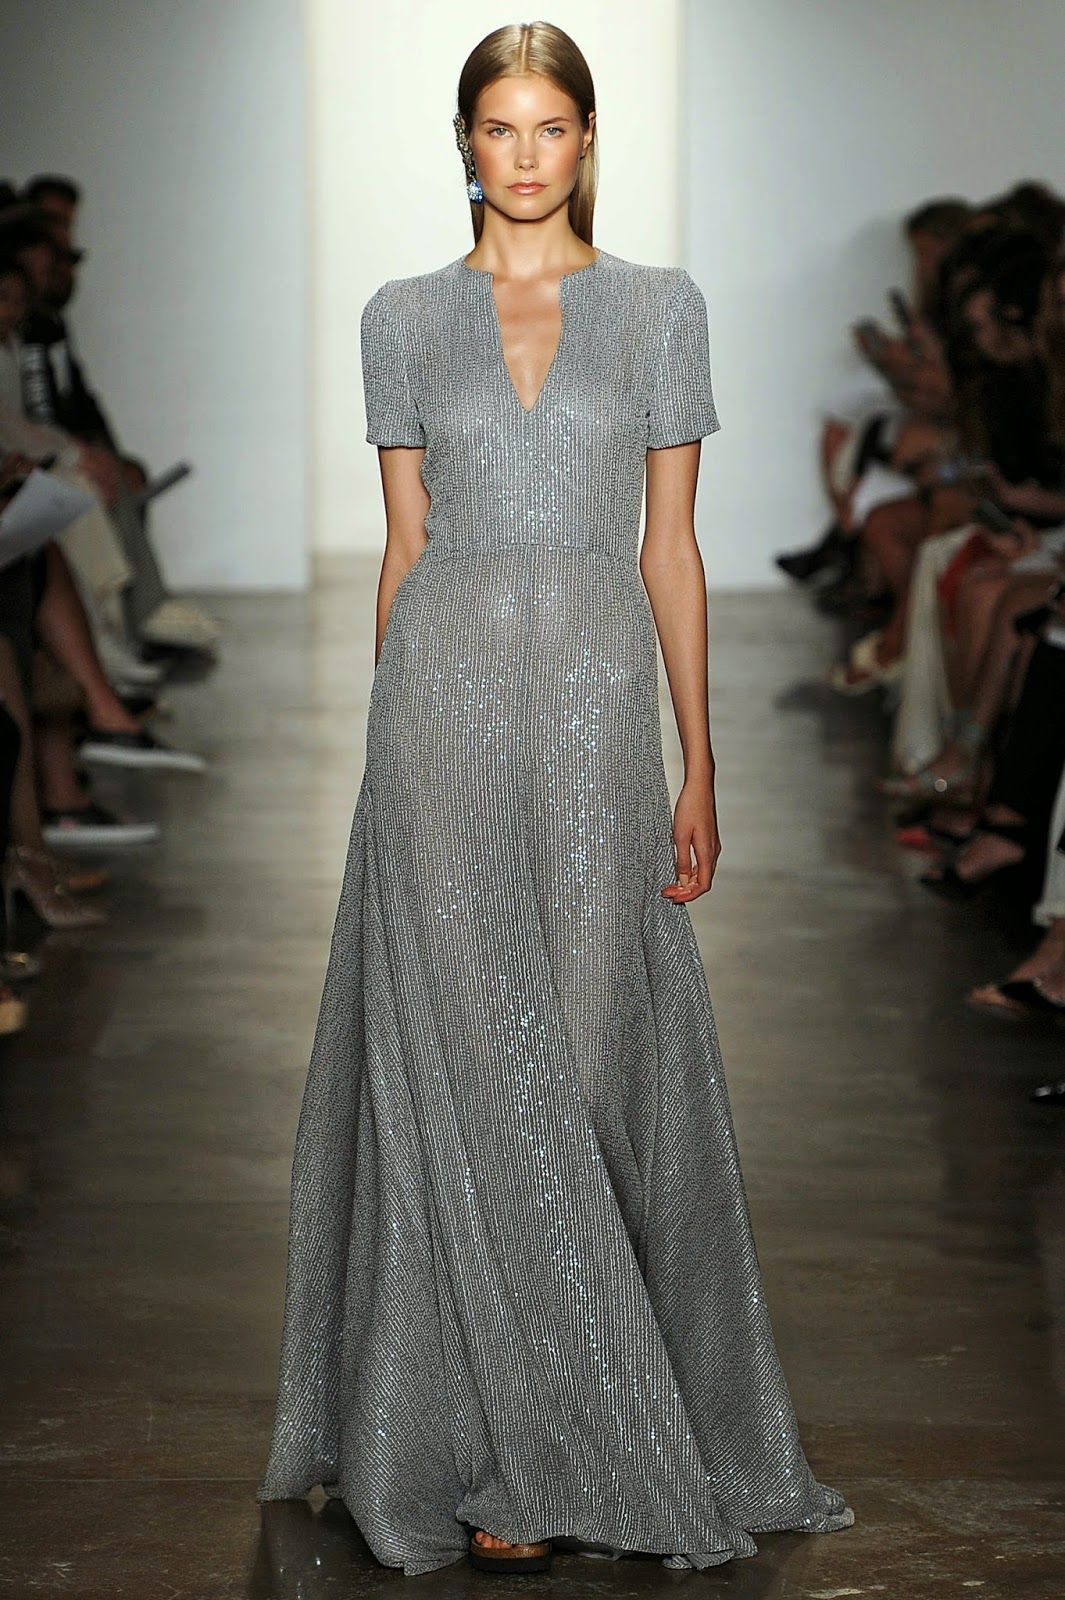 The OAK: #NYFW: Houghton, Modest short sleeve silver glitter gown with v-neck.